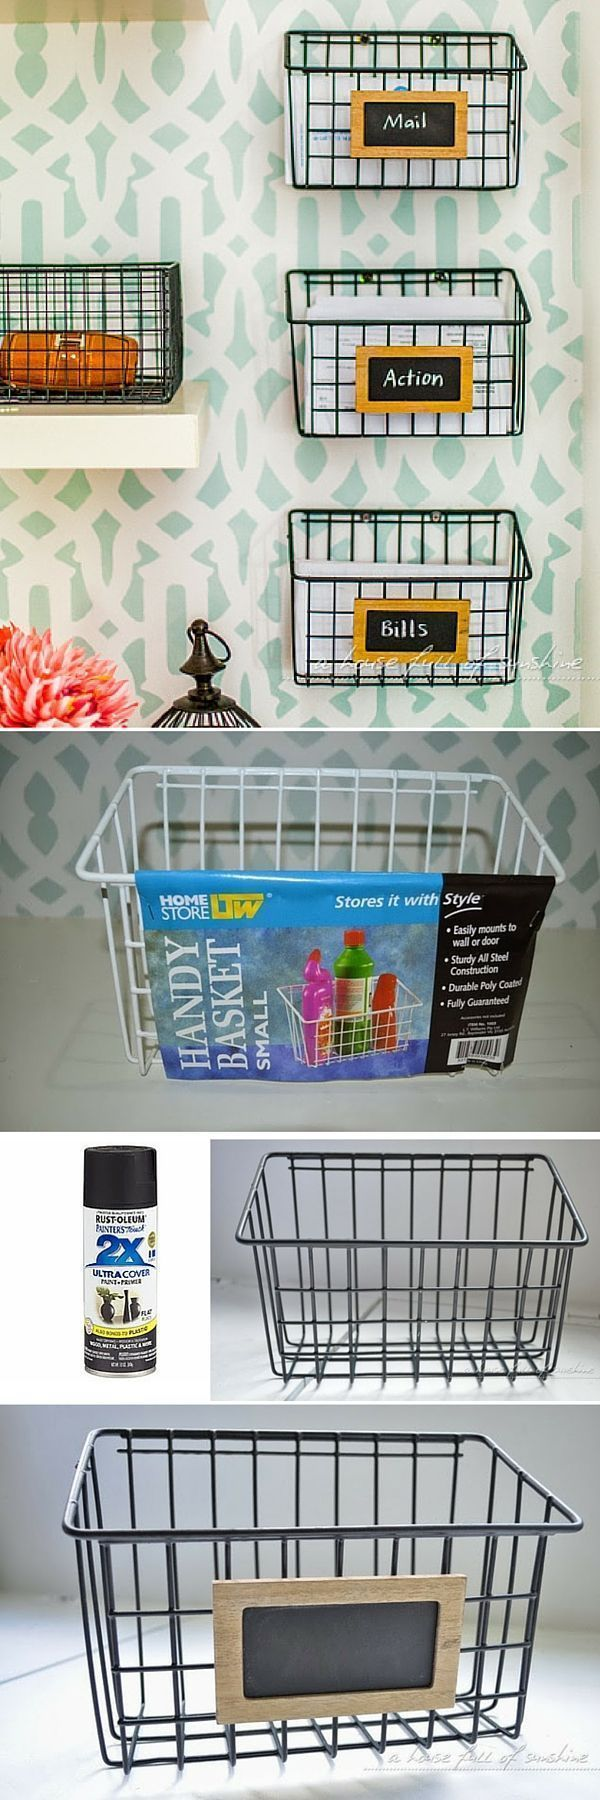 nice 15 DIY Projects to Make Your Home Look Classy...